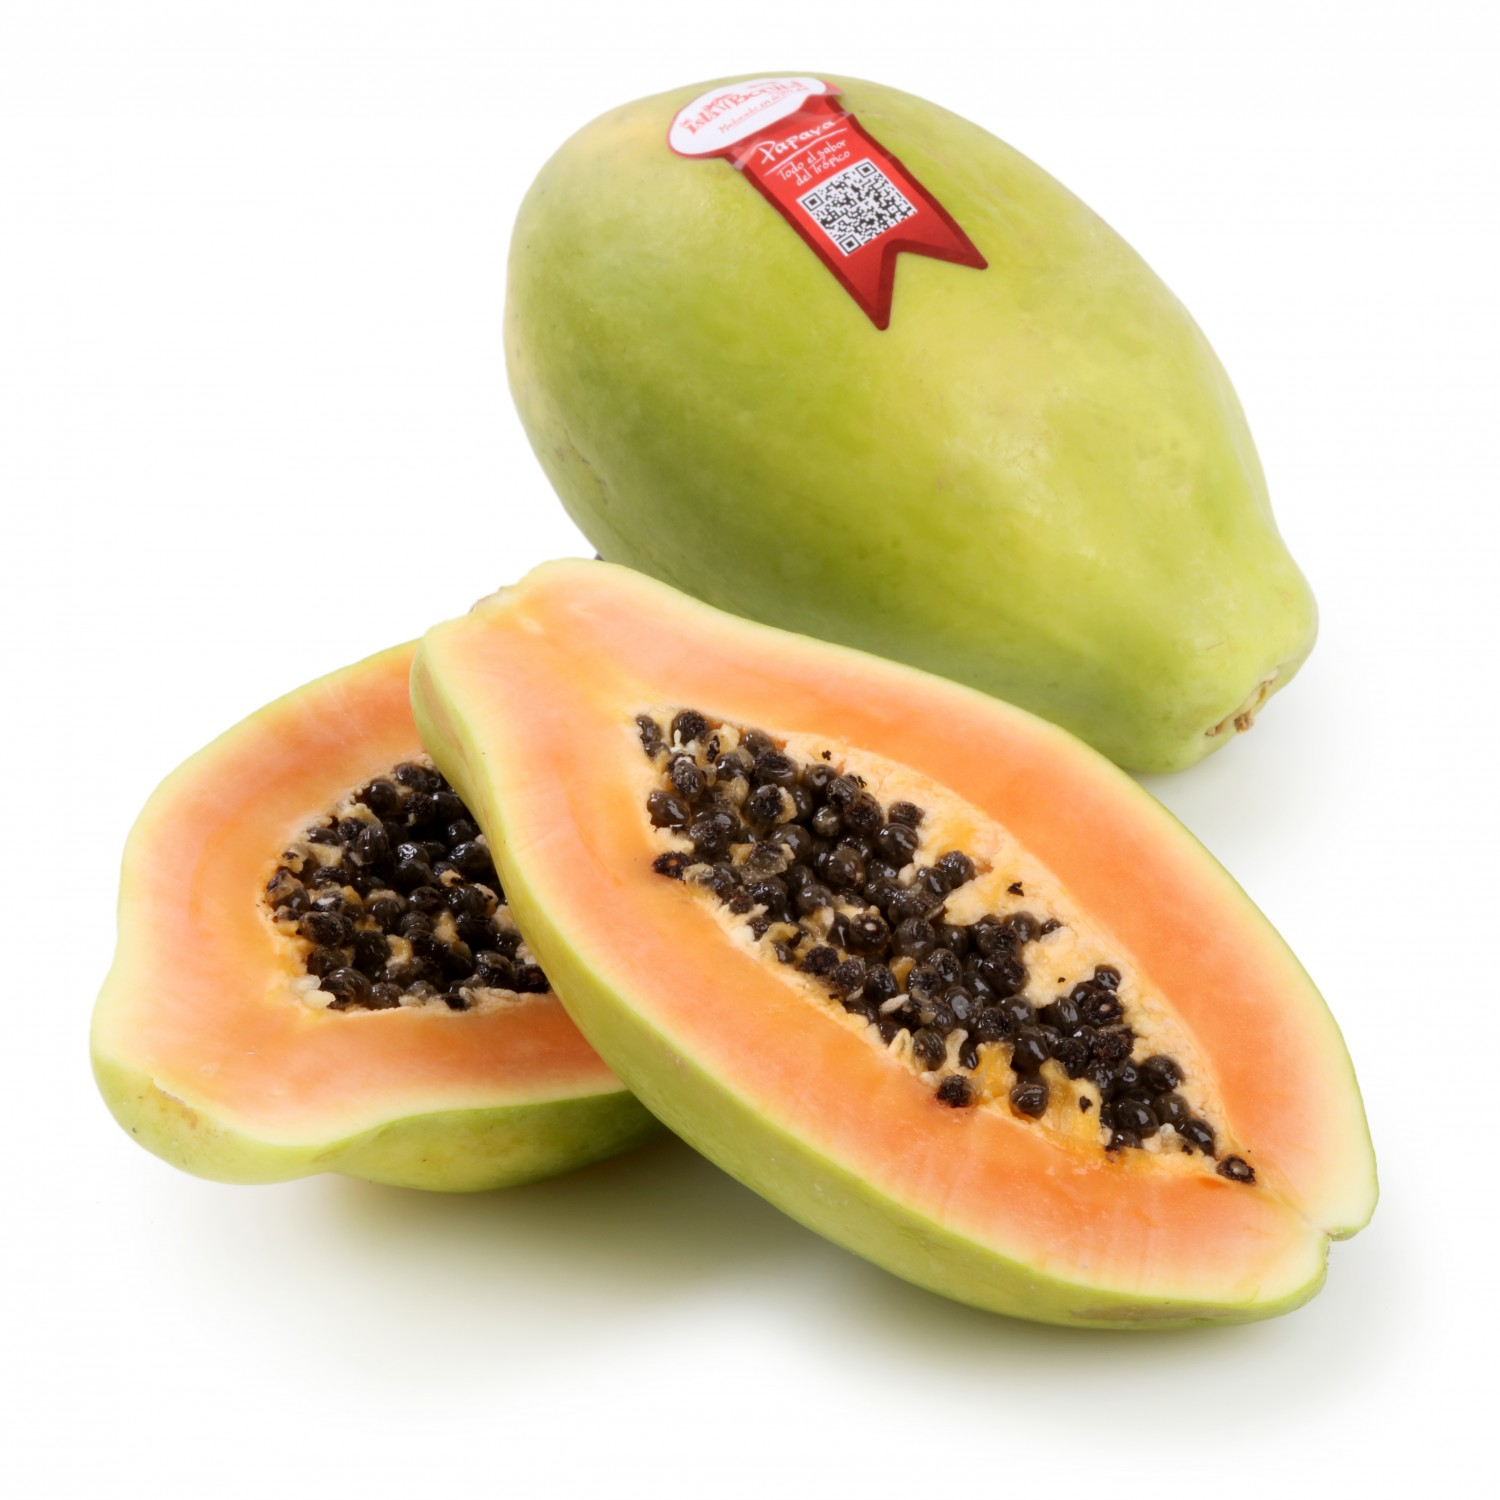 Papaya Carrefour 500 g aprox